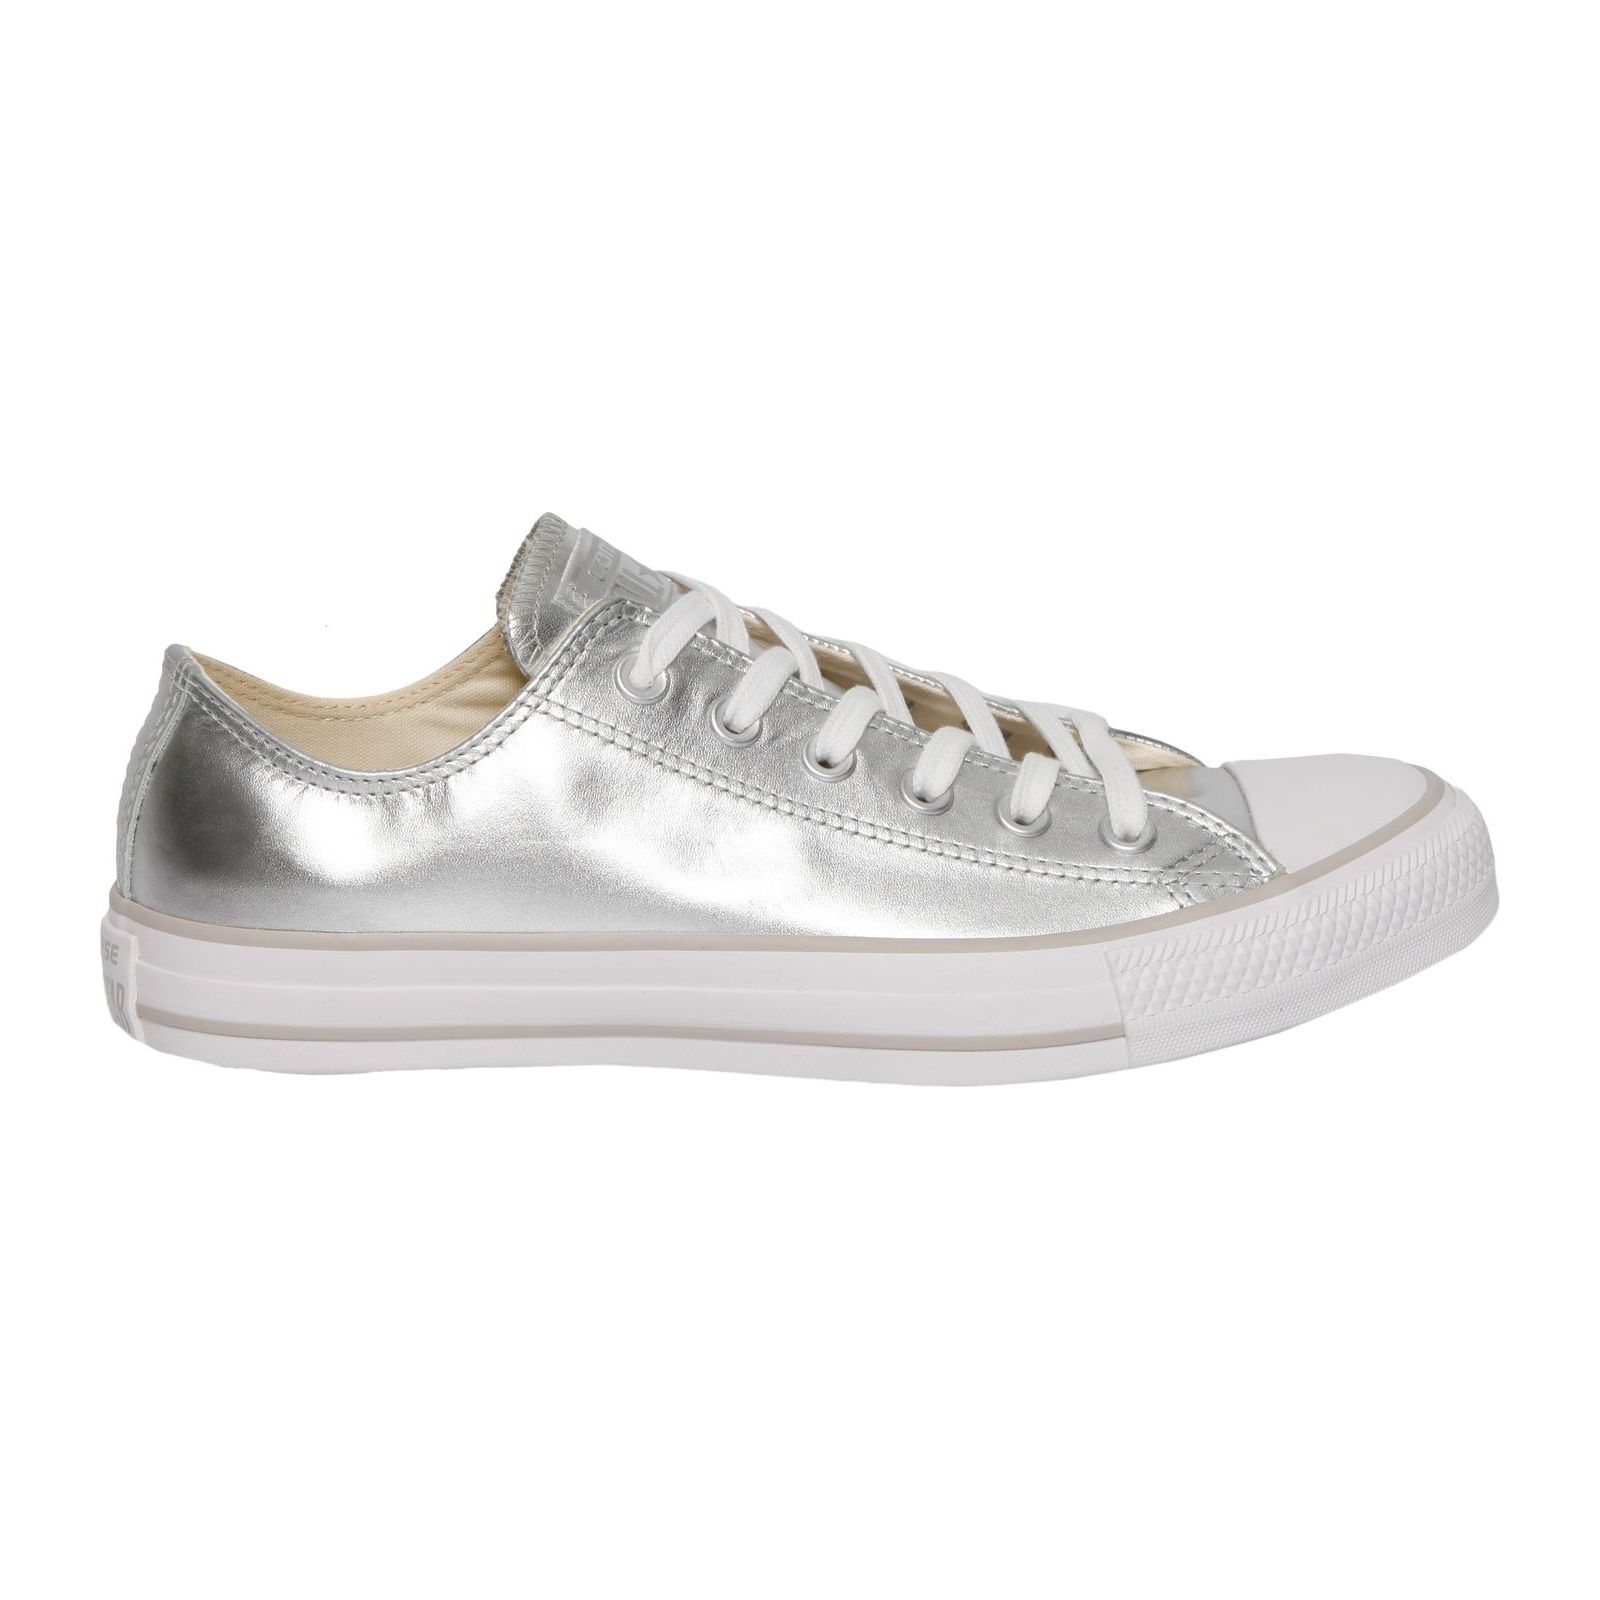 Tênis Chuck Taylor All Star - Prata